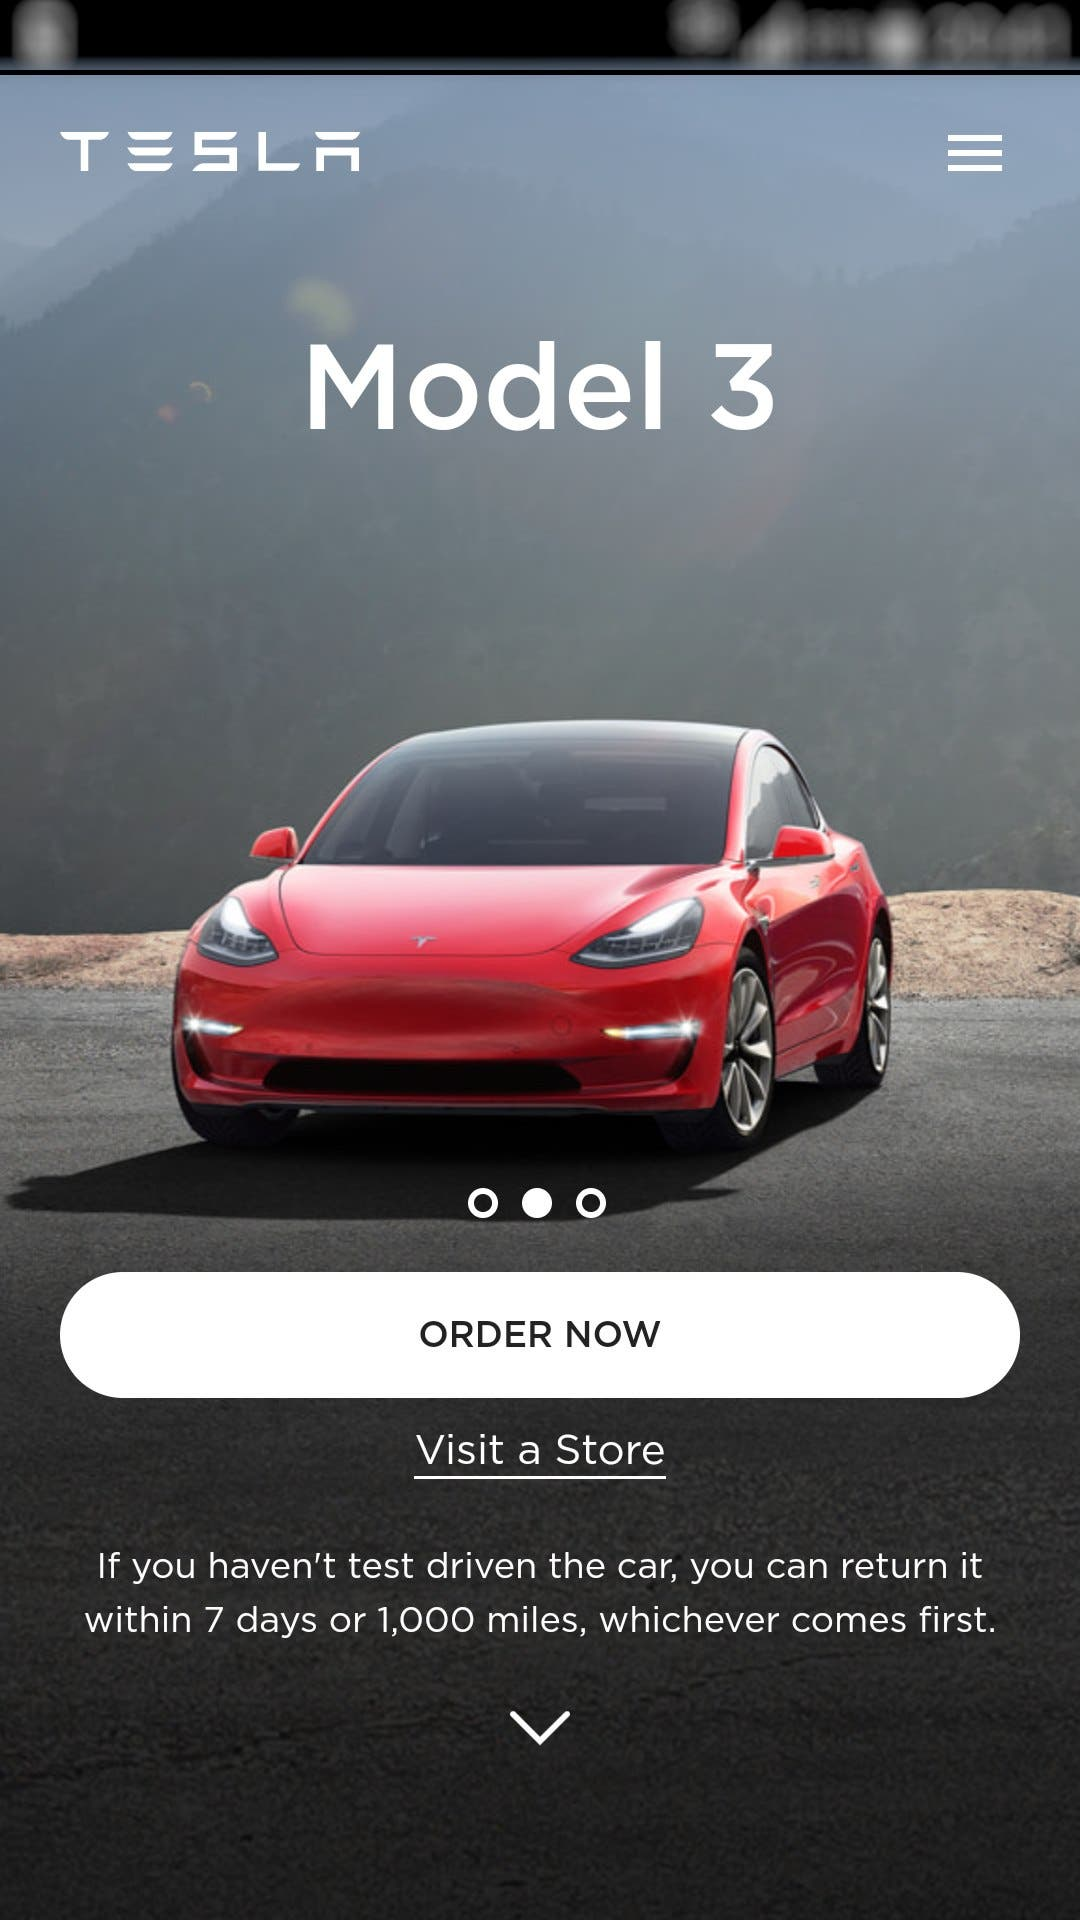 The Net Effect Of Shift Is That Tesla S Vehicles Are Now Being Sold At More Affordable Price Points Increasing Demand And Accelerating Core